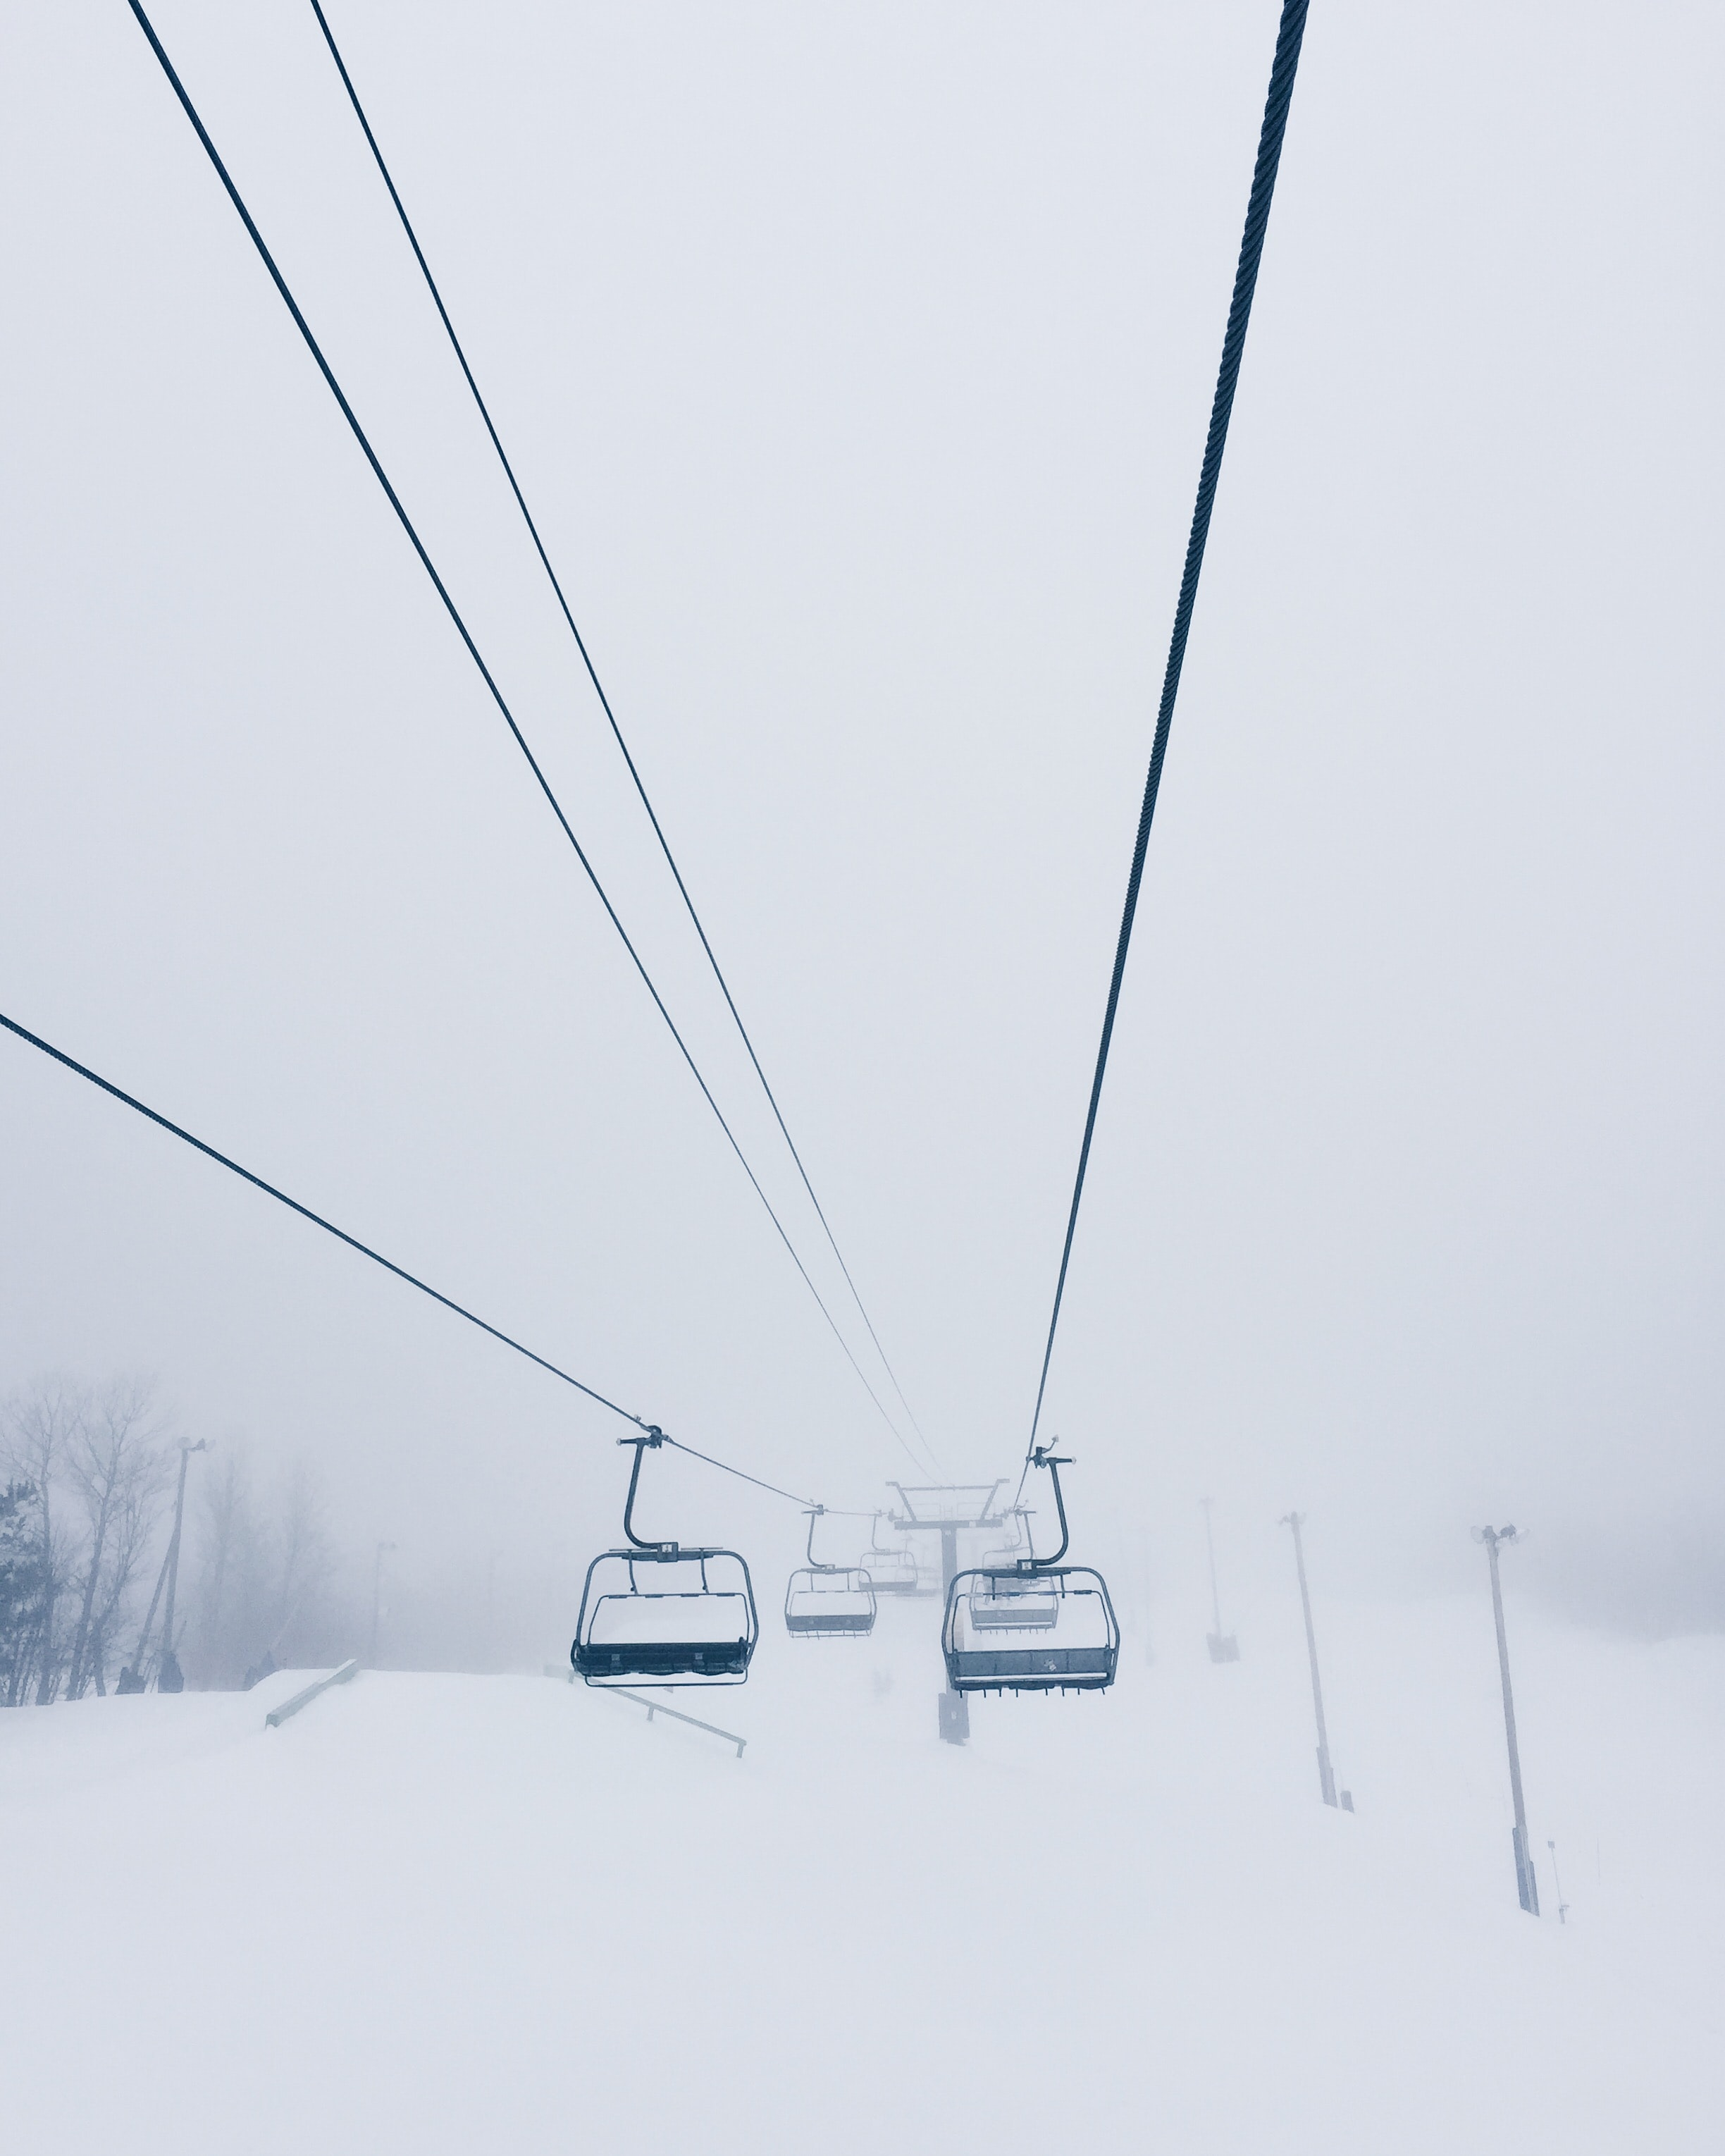 Foggy chairlift at Mont-Tremblant, Québec, Canada.